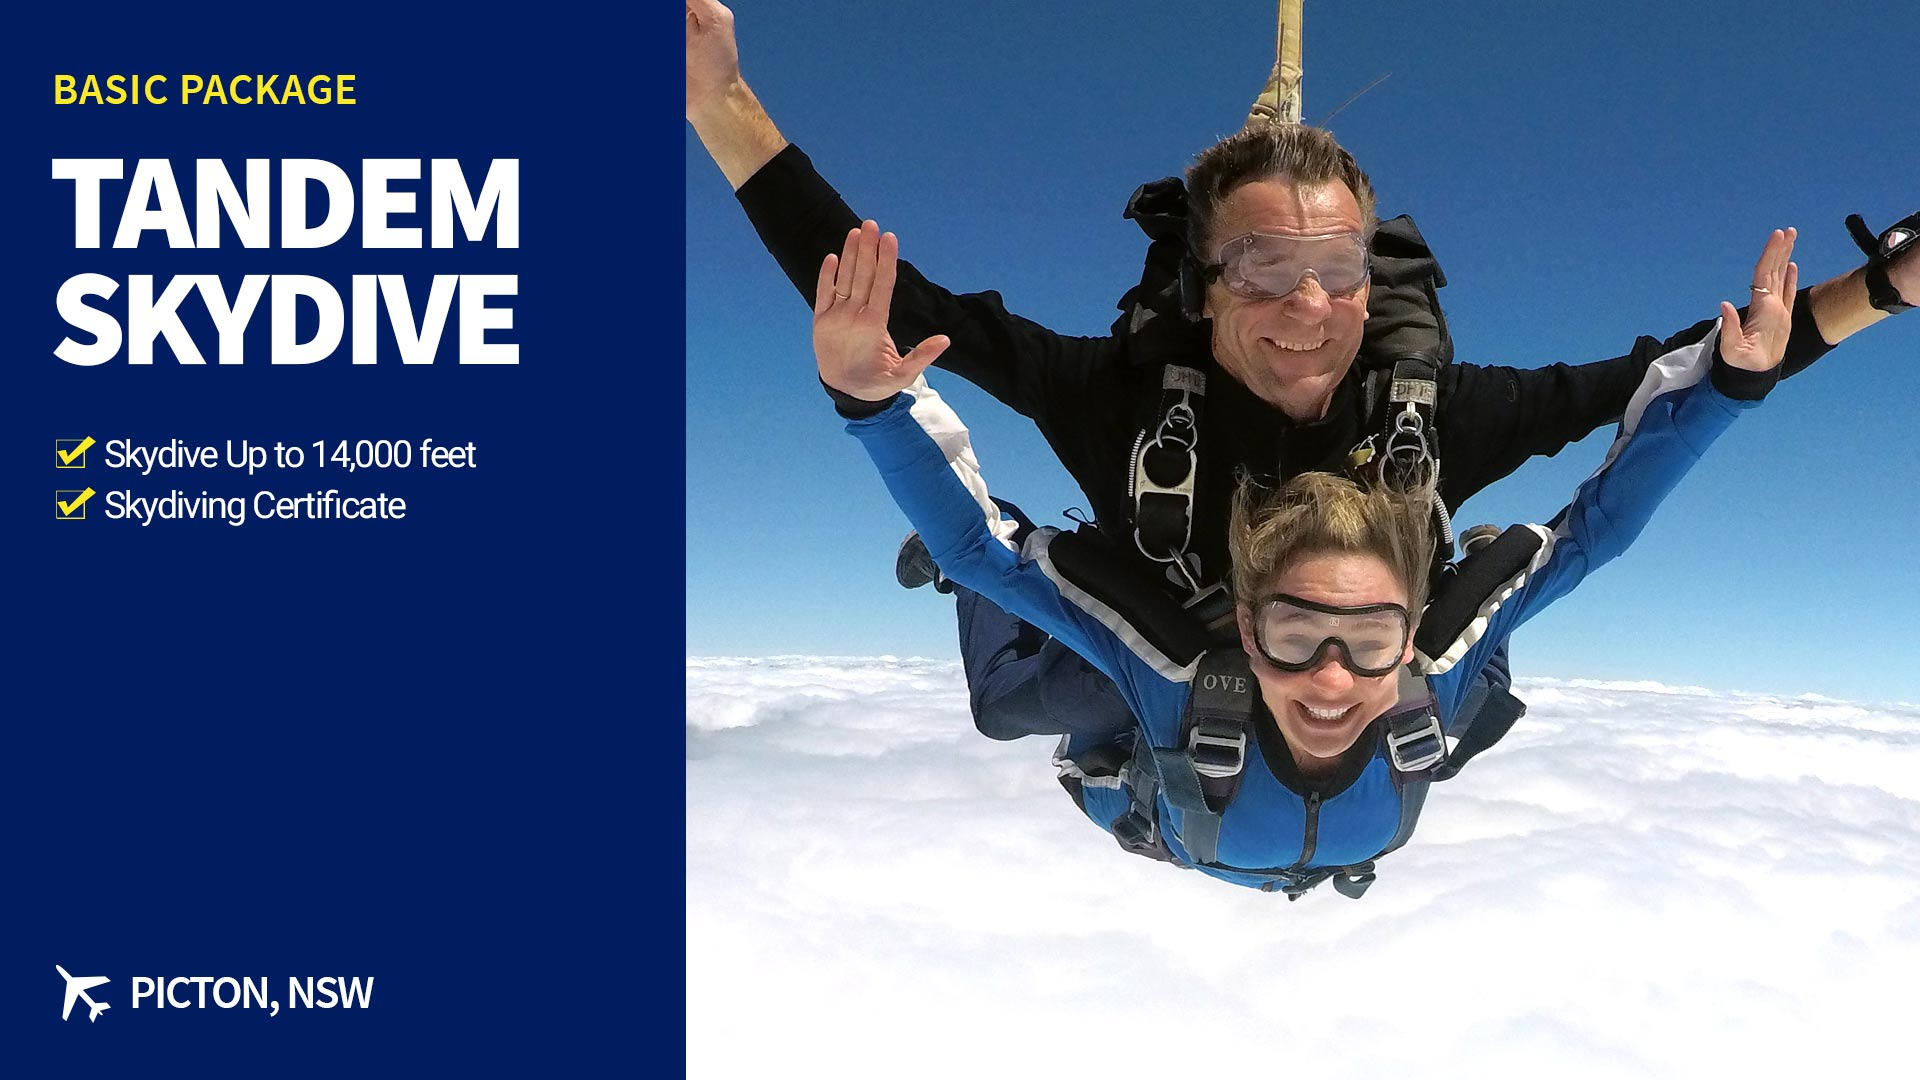 Tandem Skydive up to 14,000ft